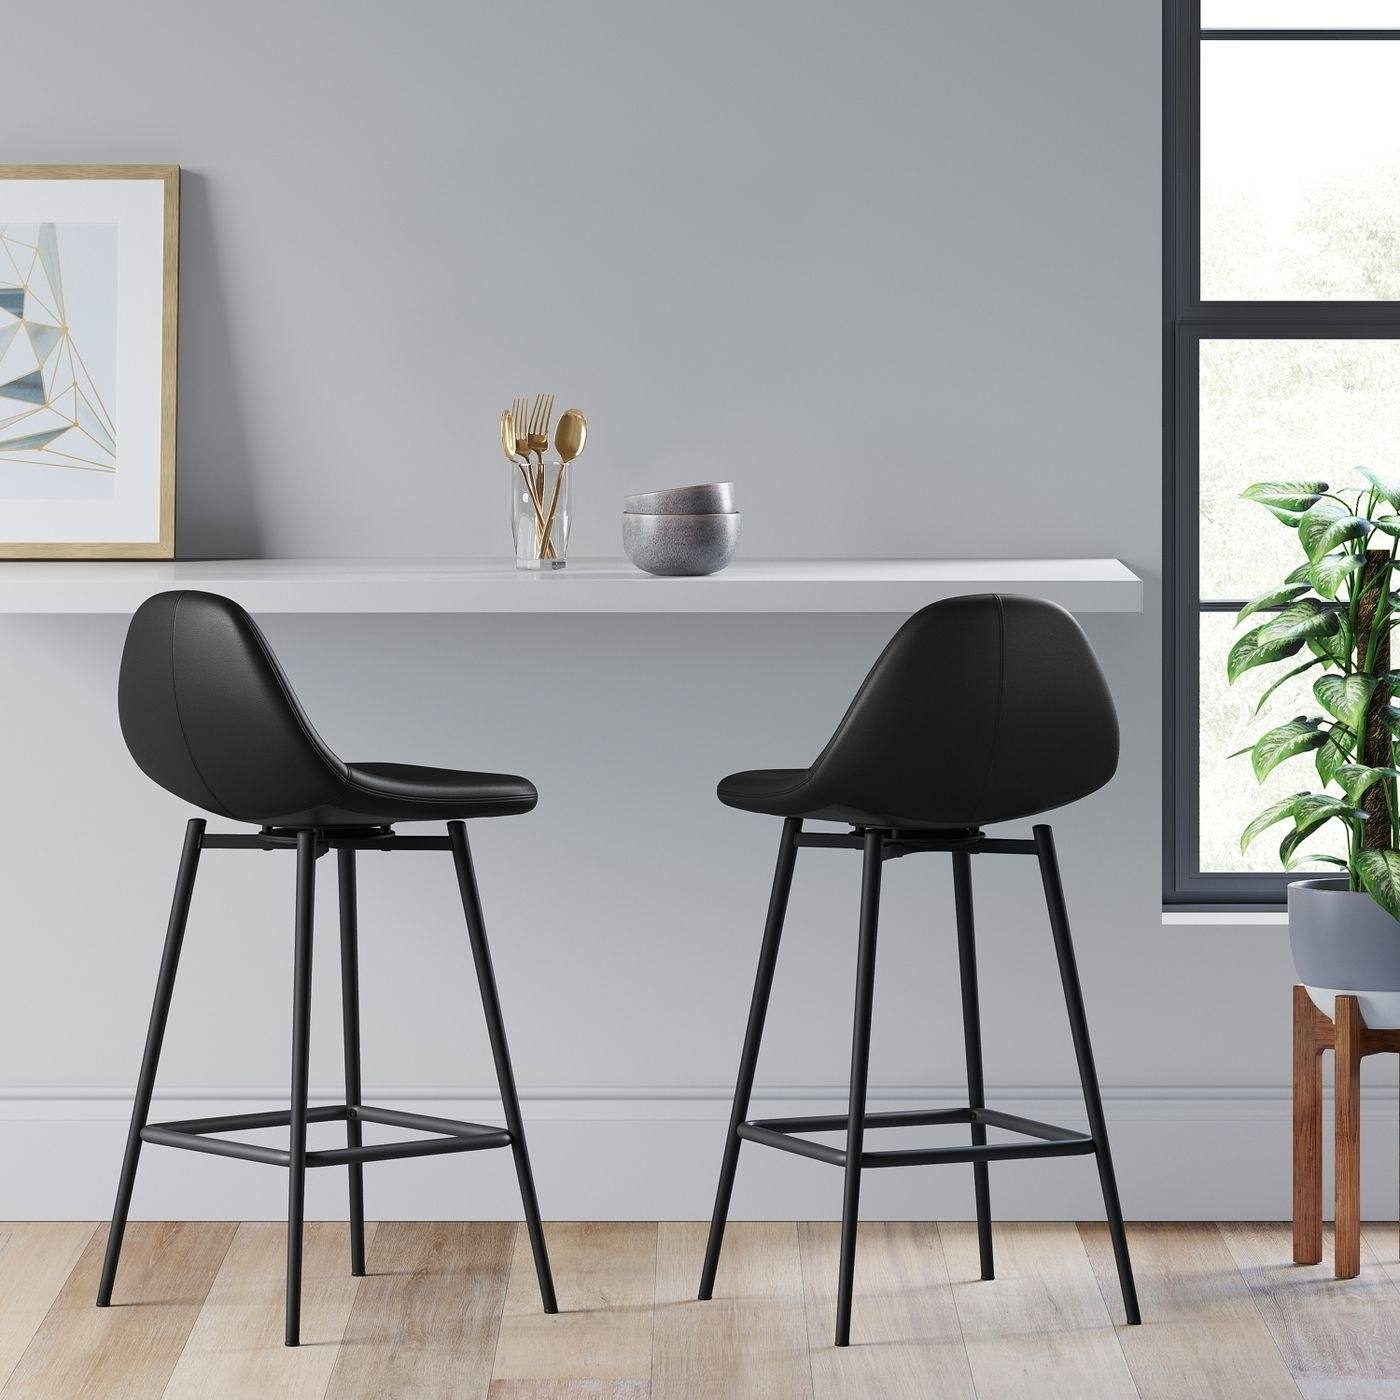 A set of black barstools at a side counter